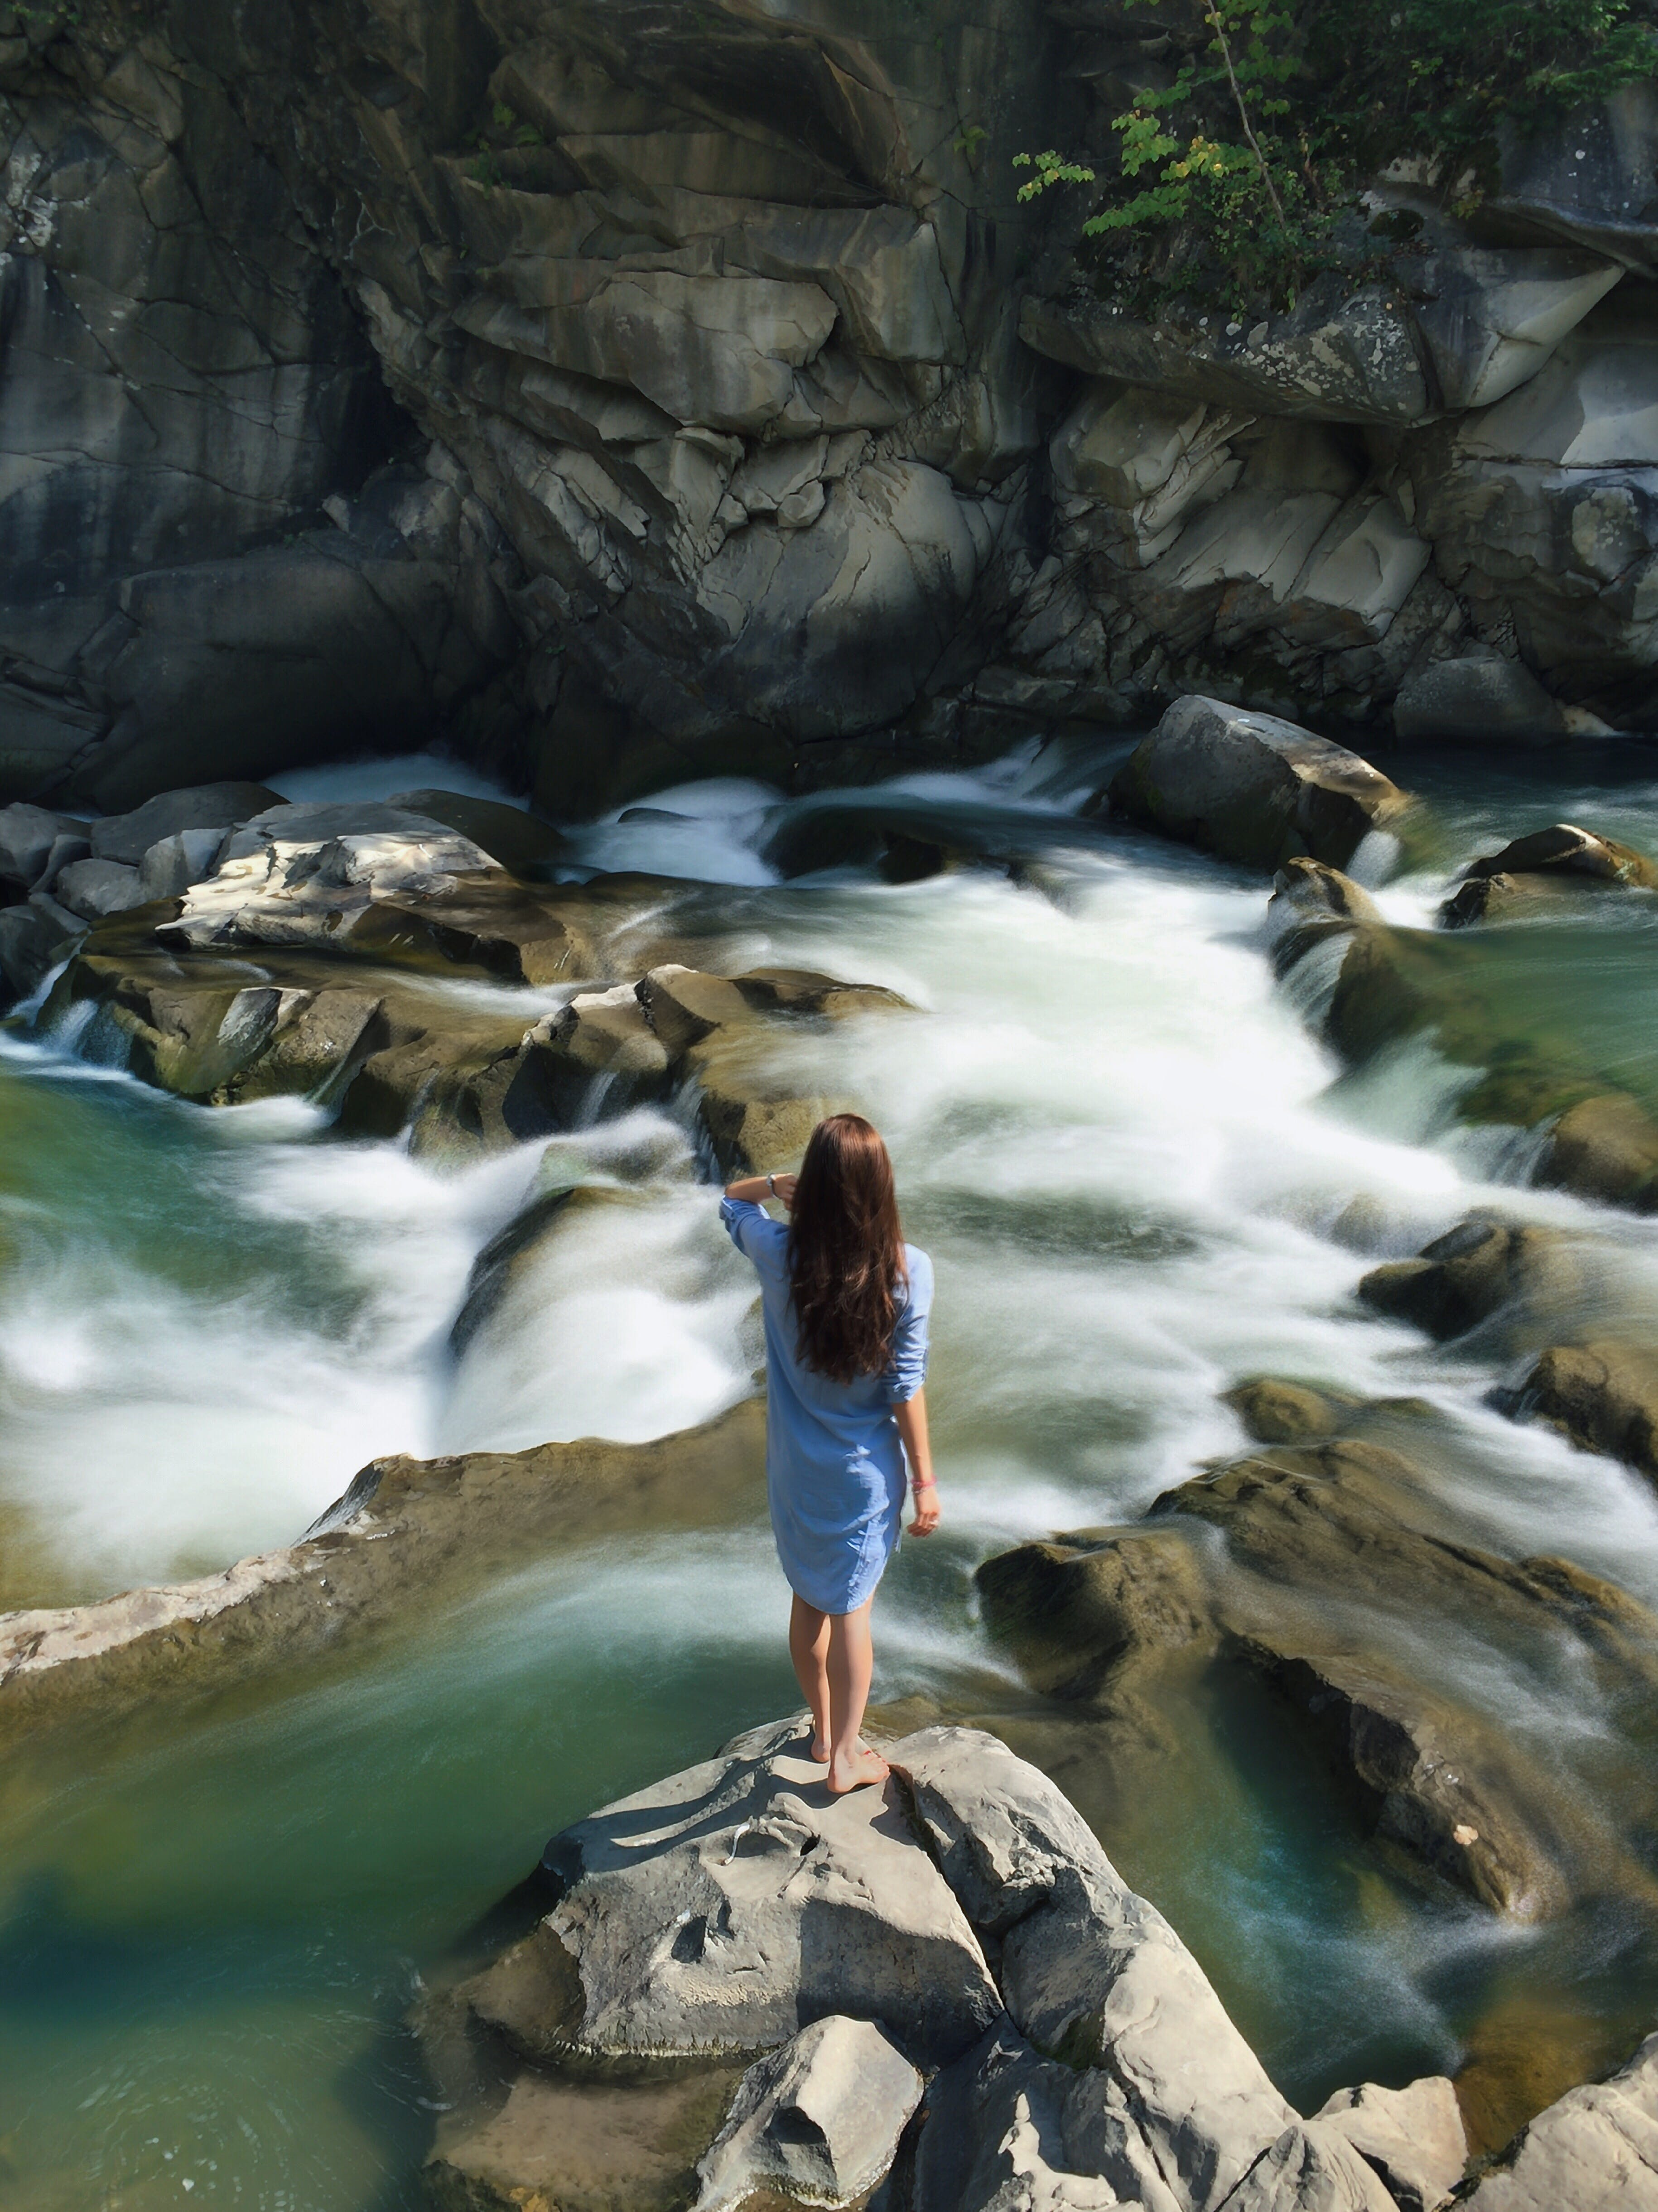 Woman in Blue Long-sleeved Dress Standing in Middle of Rock With Raging Water